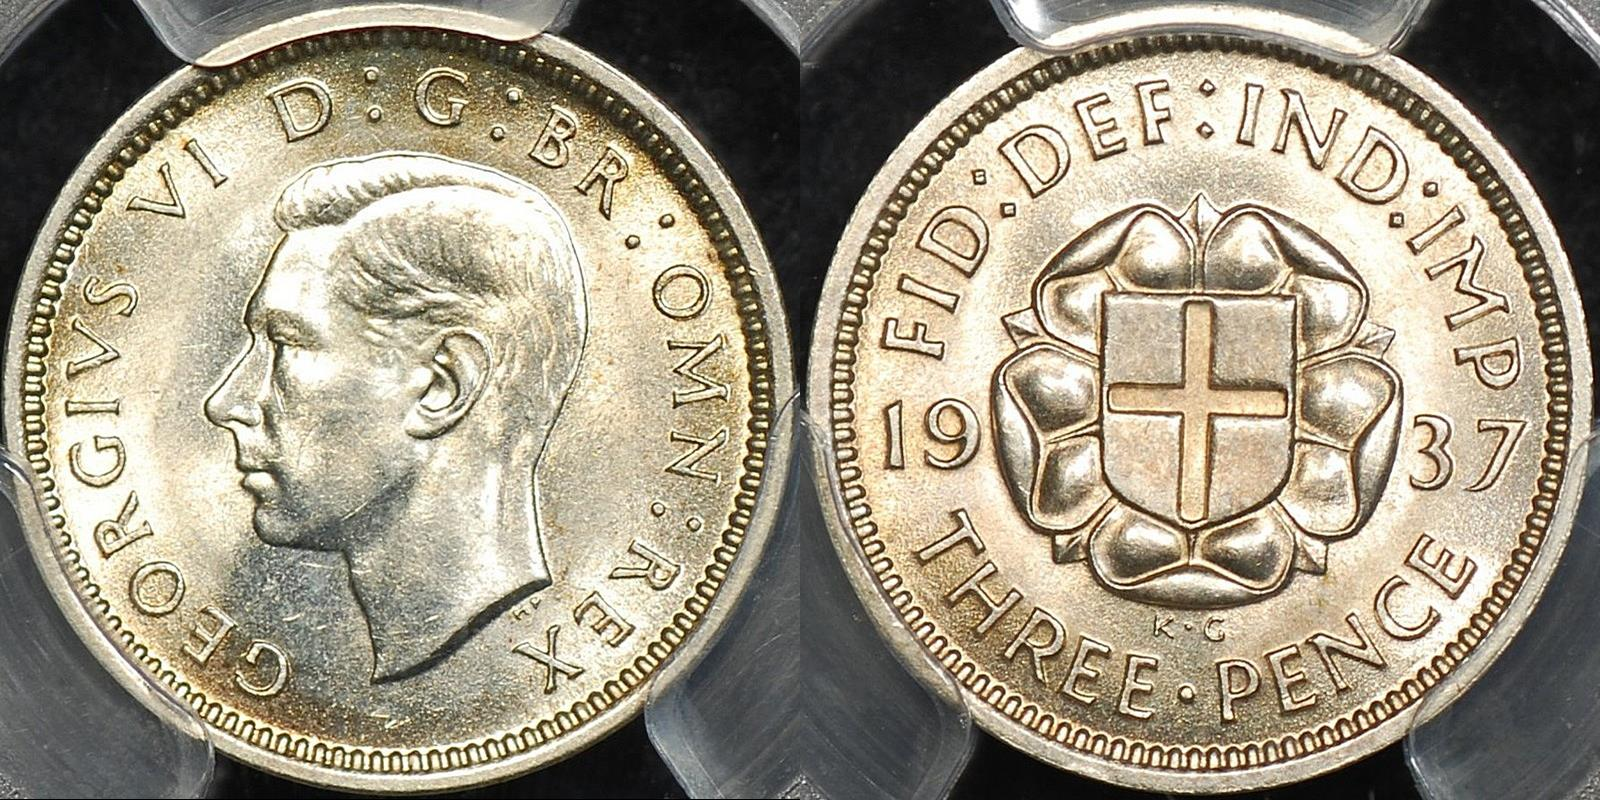 Great britain 1937 threepence 3d km 848 PCGS MS64 Choice Uncirculated